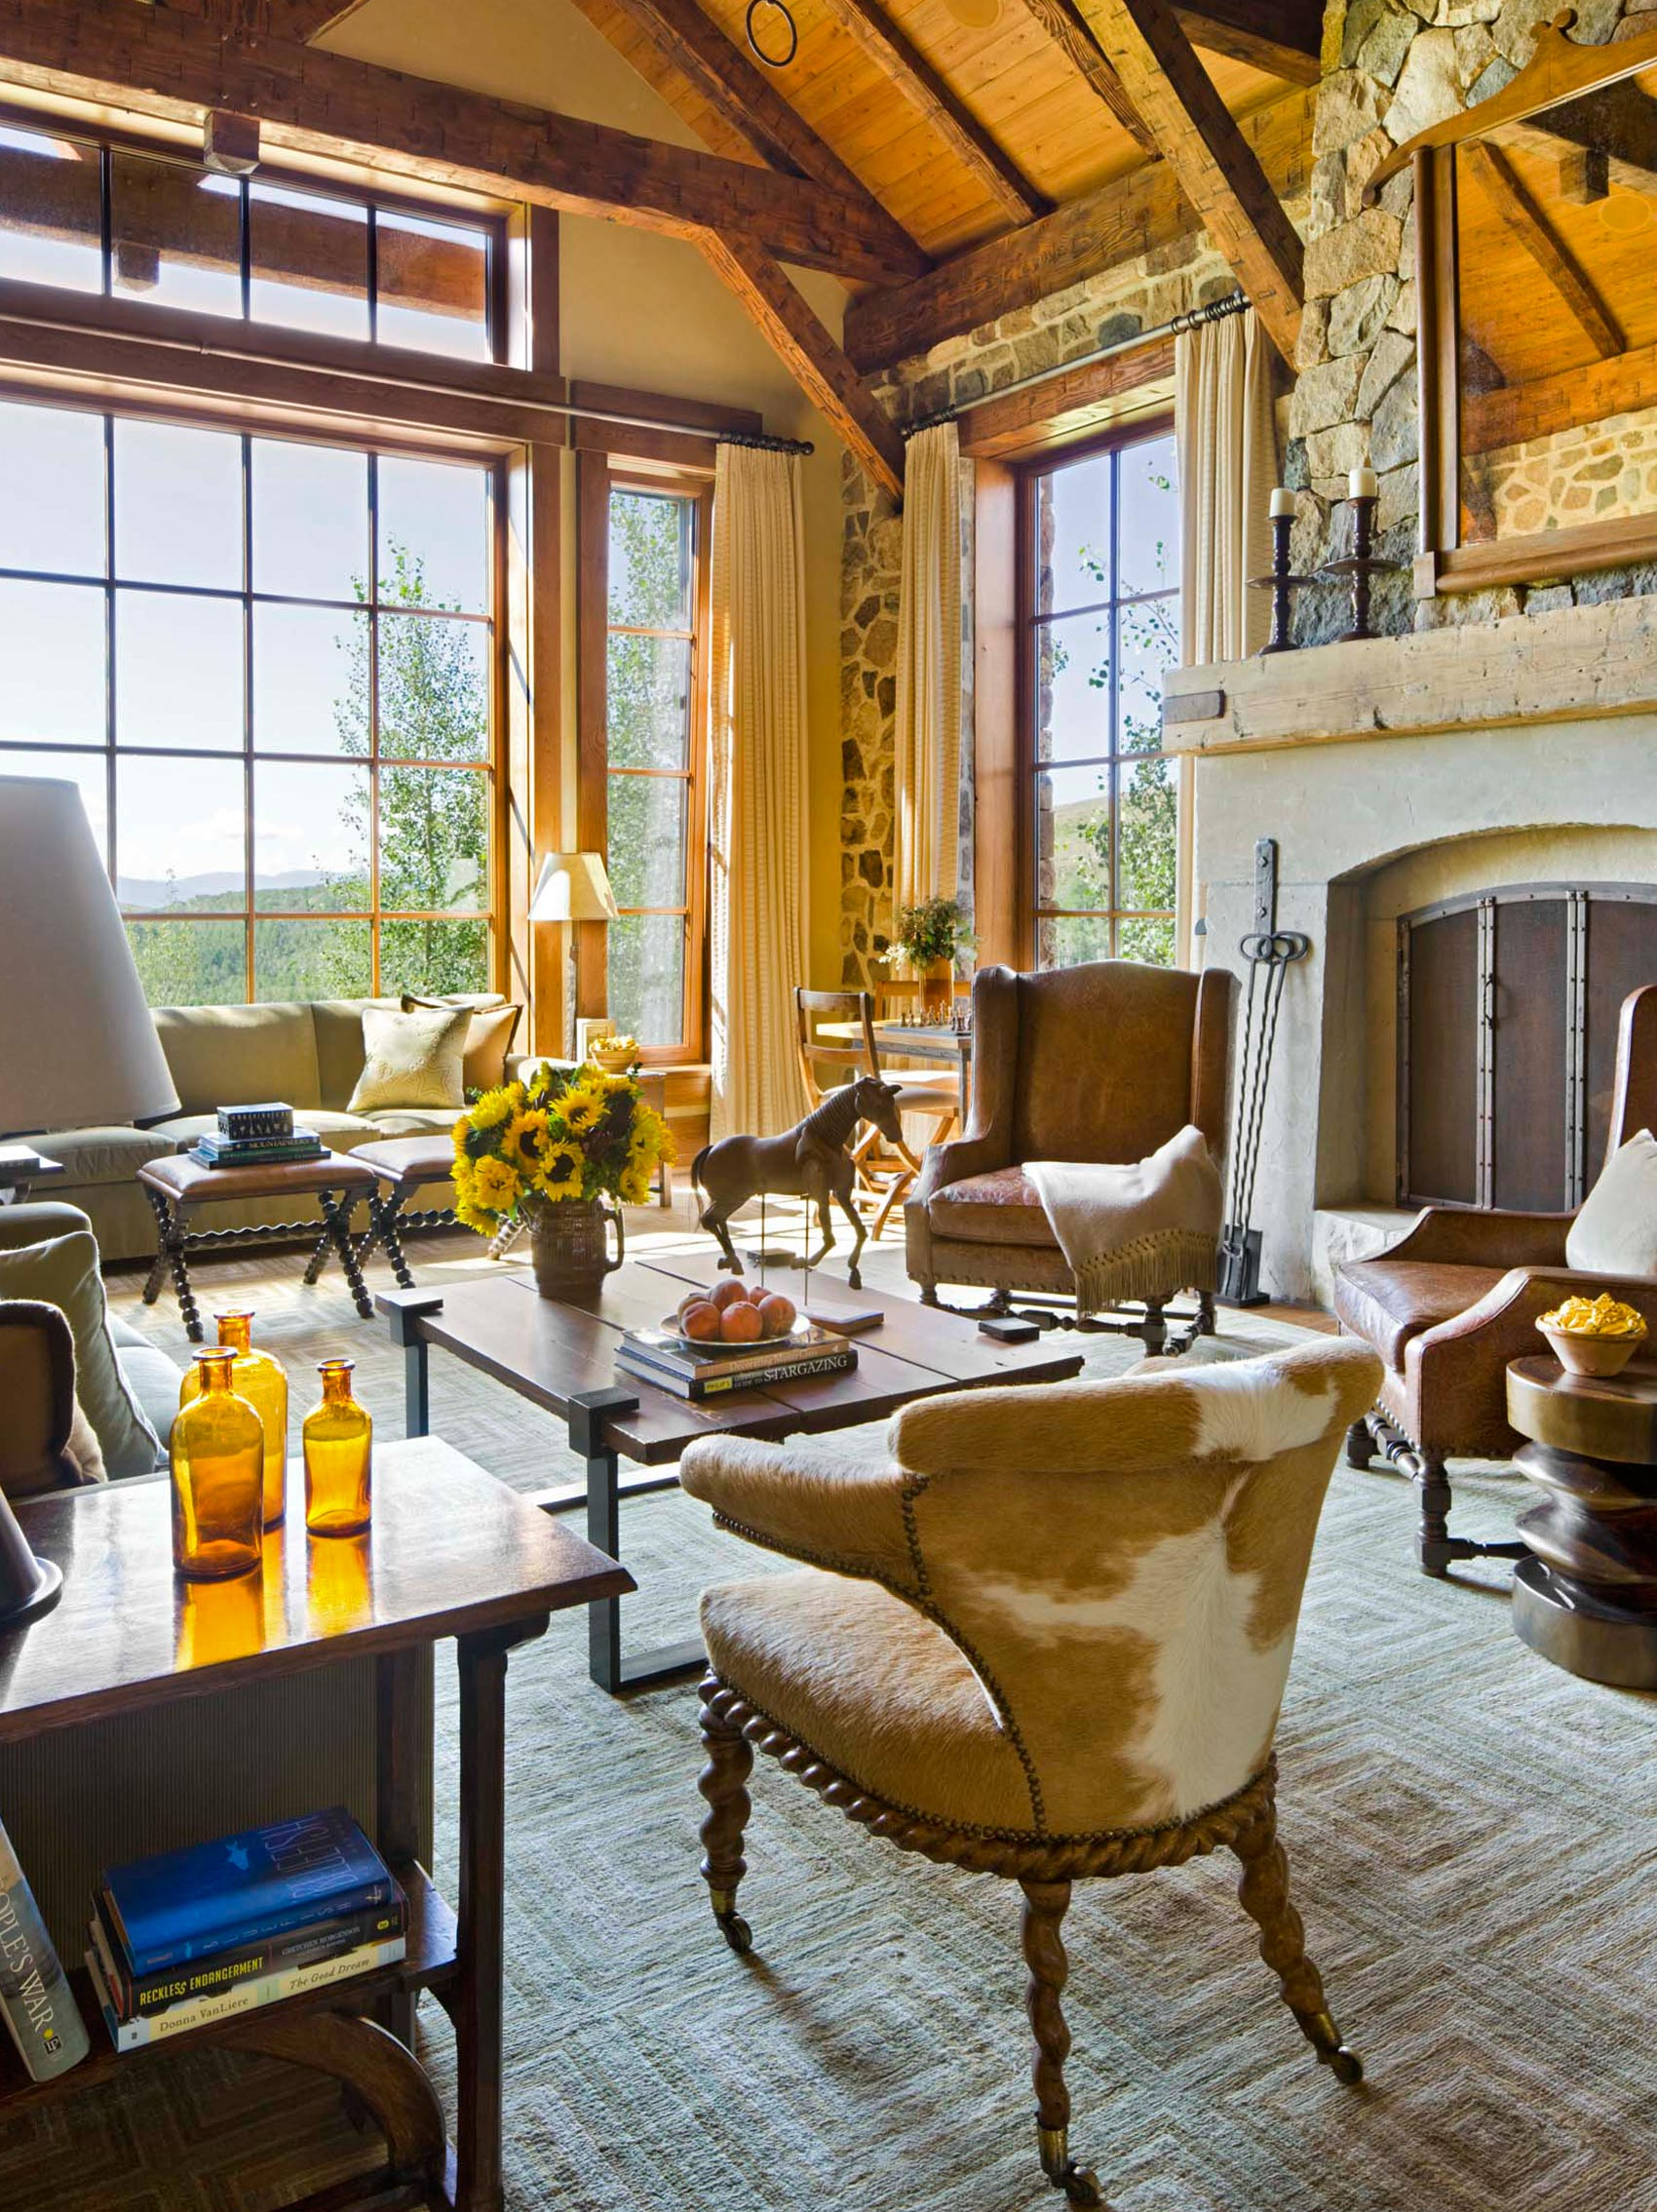 Top 4 interior design projects of the week a colorado ranch a tranquil retreat a rustic abode a bold home